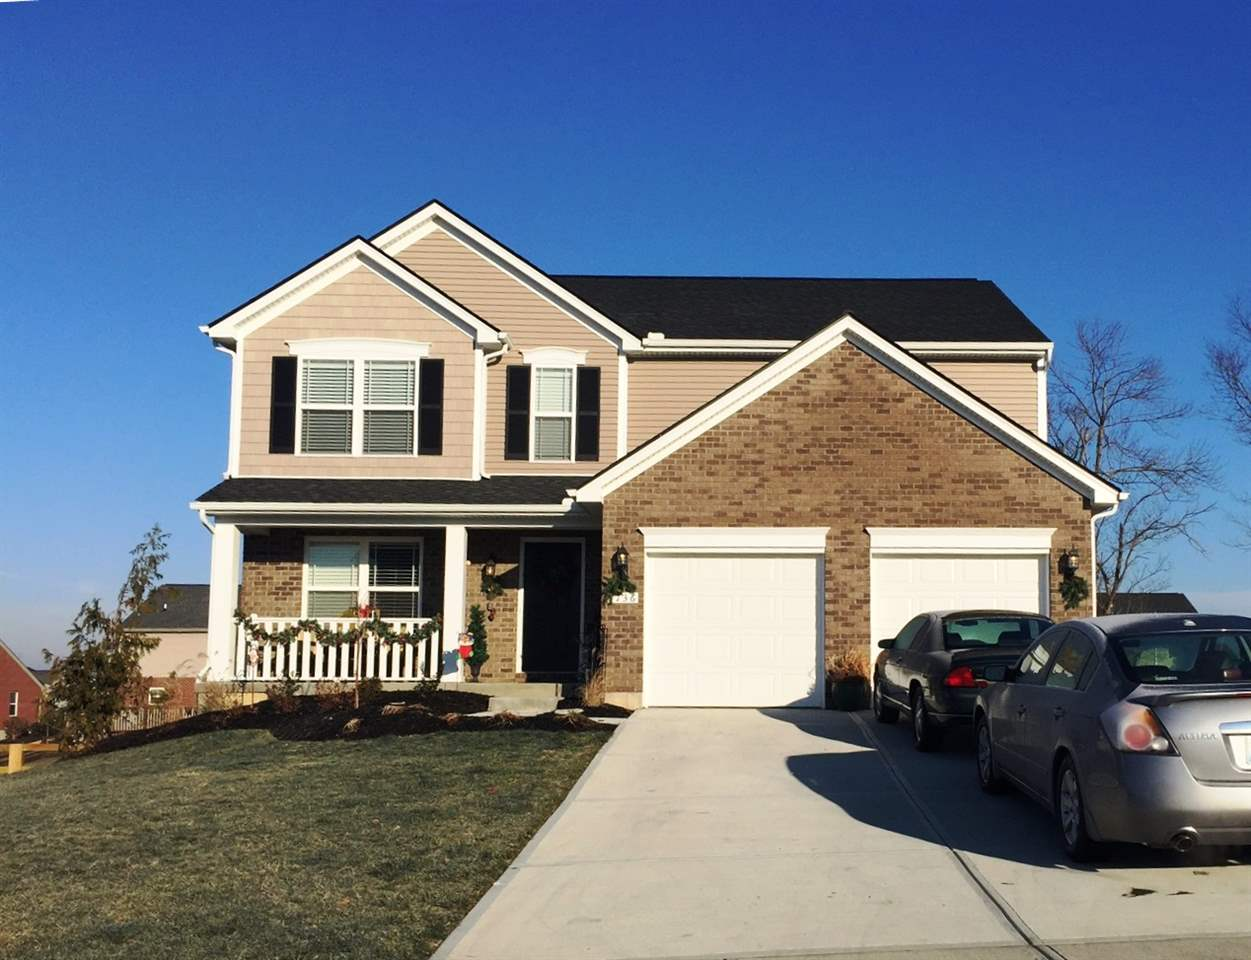 Photo 1 for 1136 Summerhill Ln Independence, KY 41051